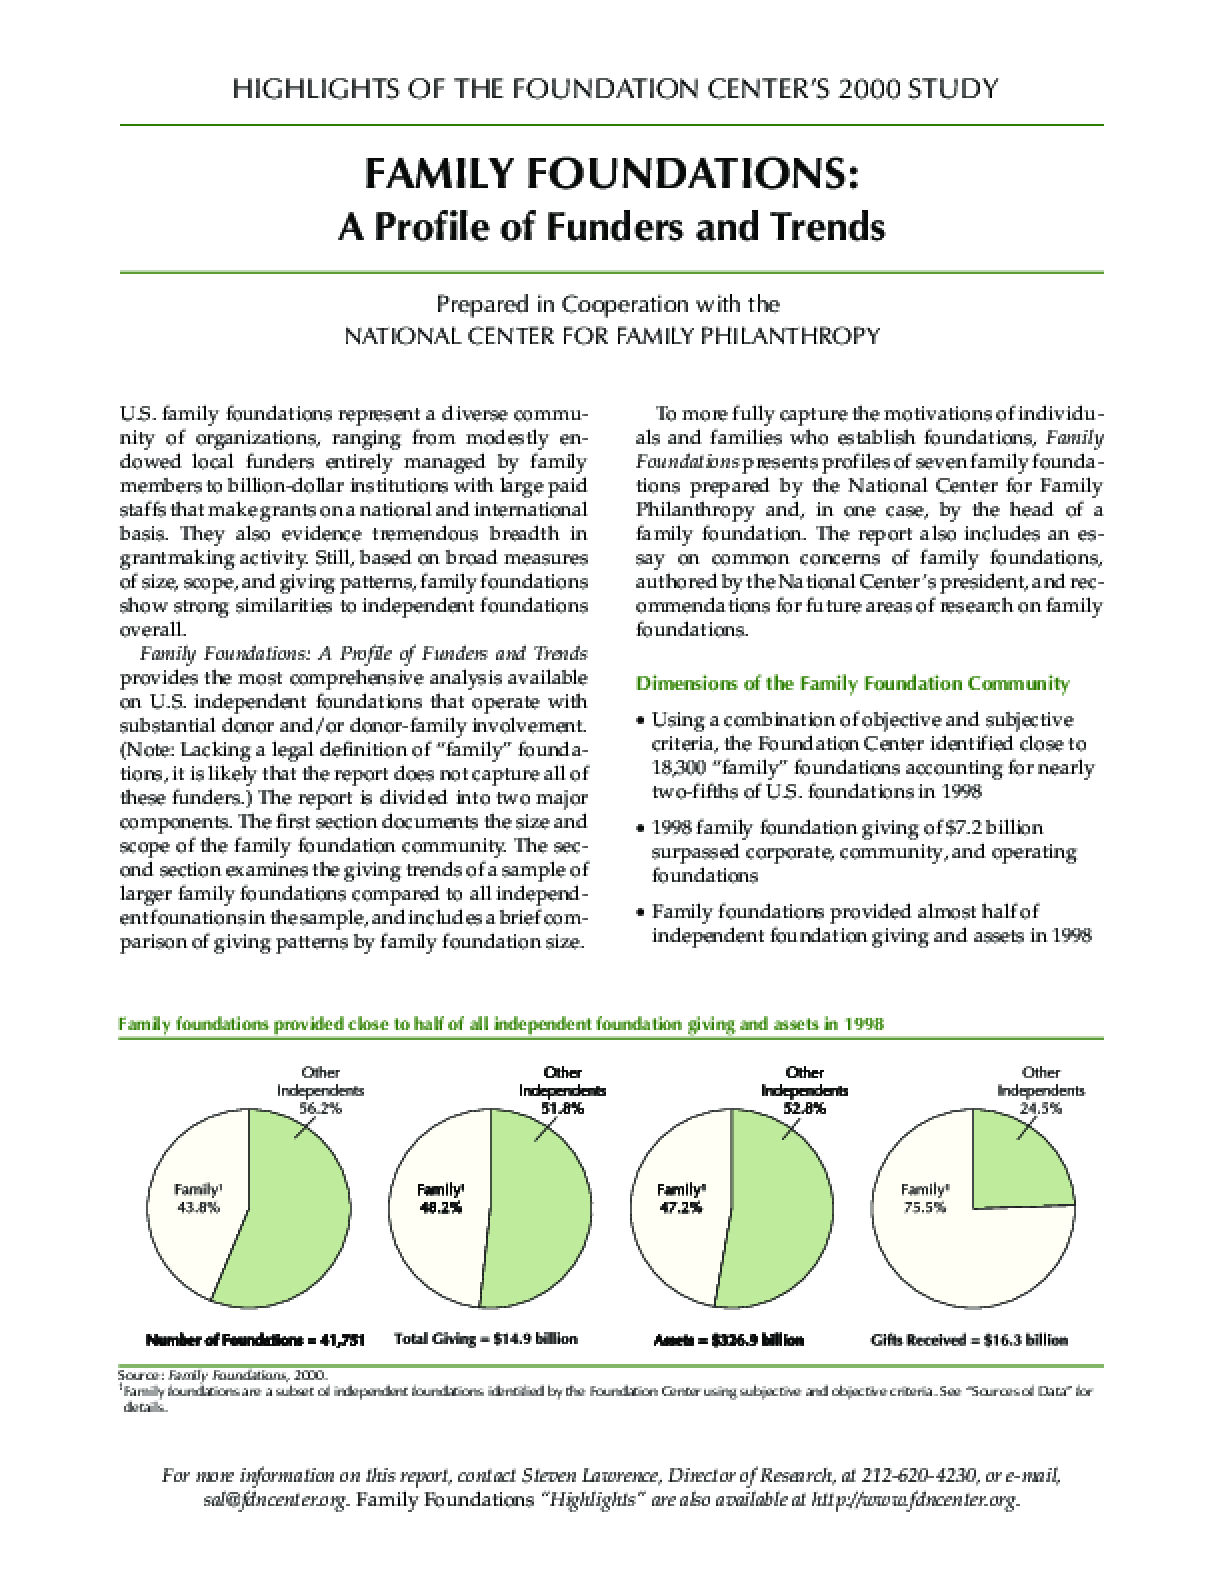 Highlights of the Foundation Center's 2000 Study - Family Foundations: A Profile of Funders and Trends